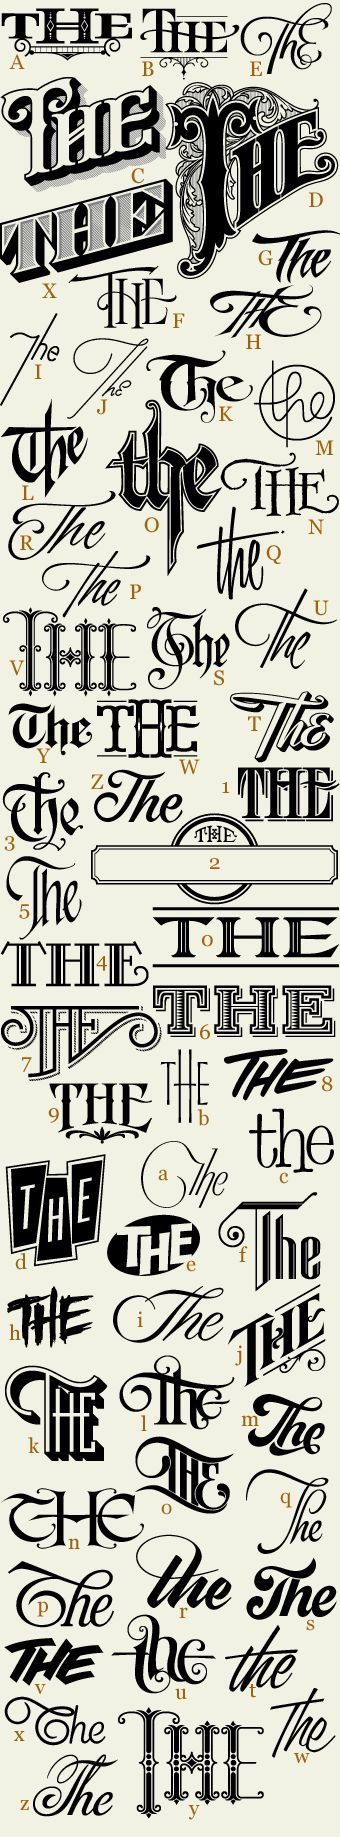 """The many ways to write the word """"the""""."""